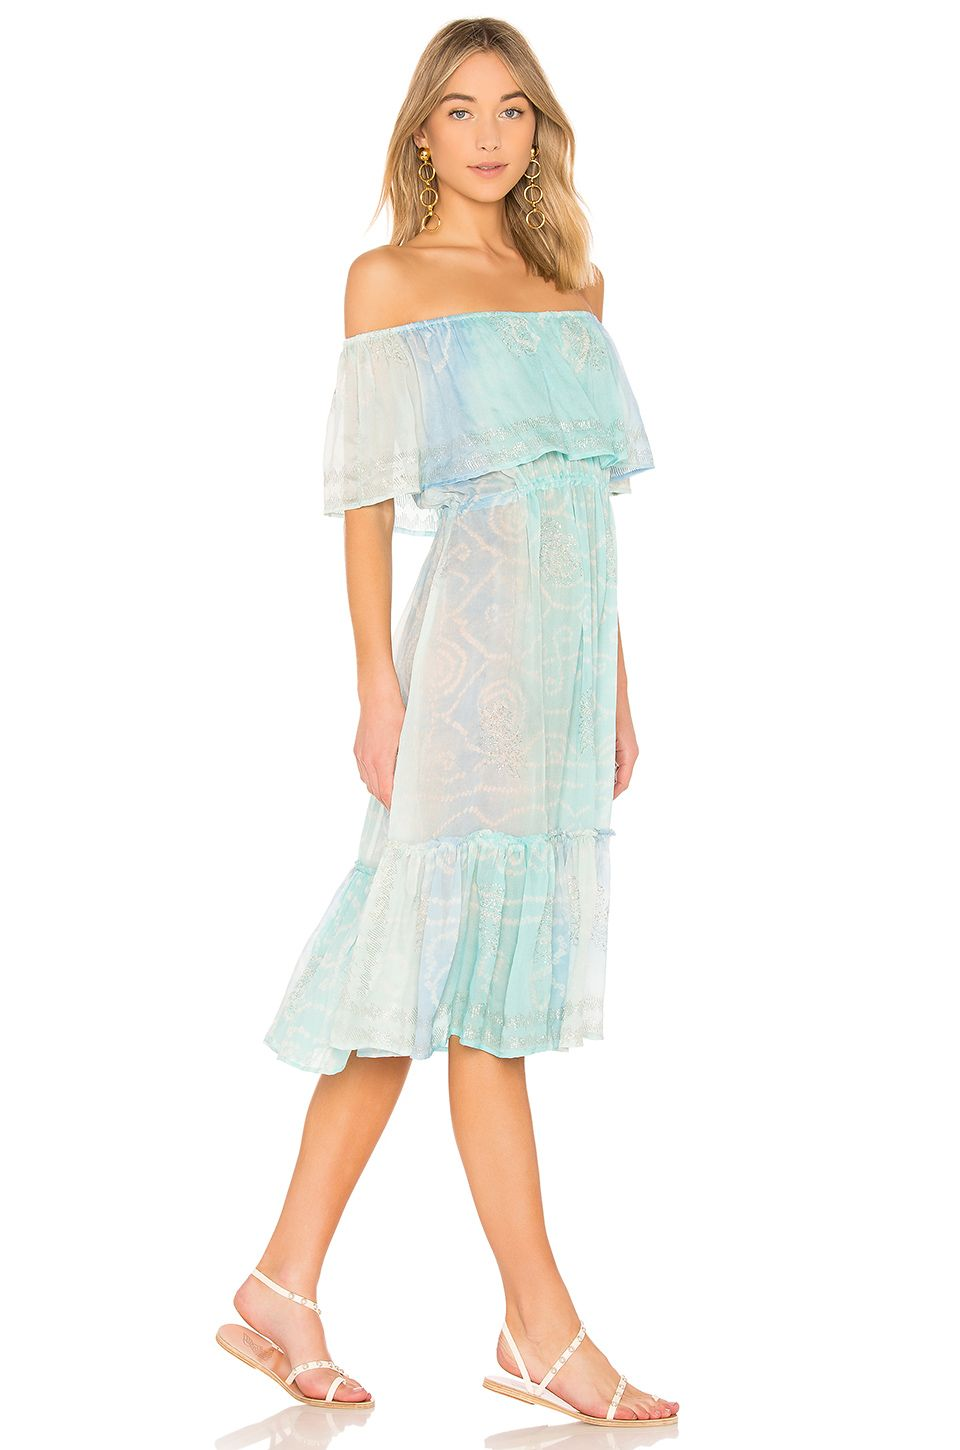 de2d6020aabd juliet dunn Off the Shoulder Dress in Aqua & Blue | Fashion ...